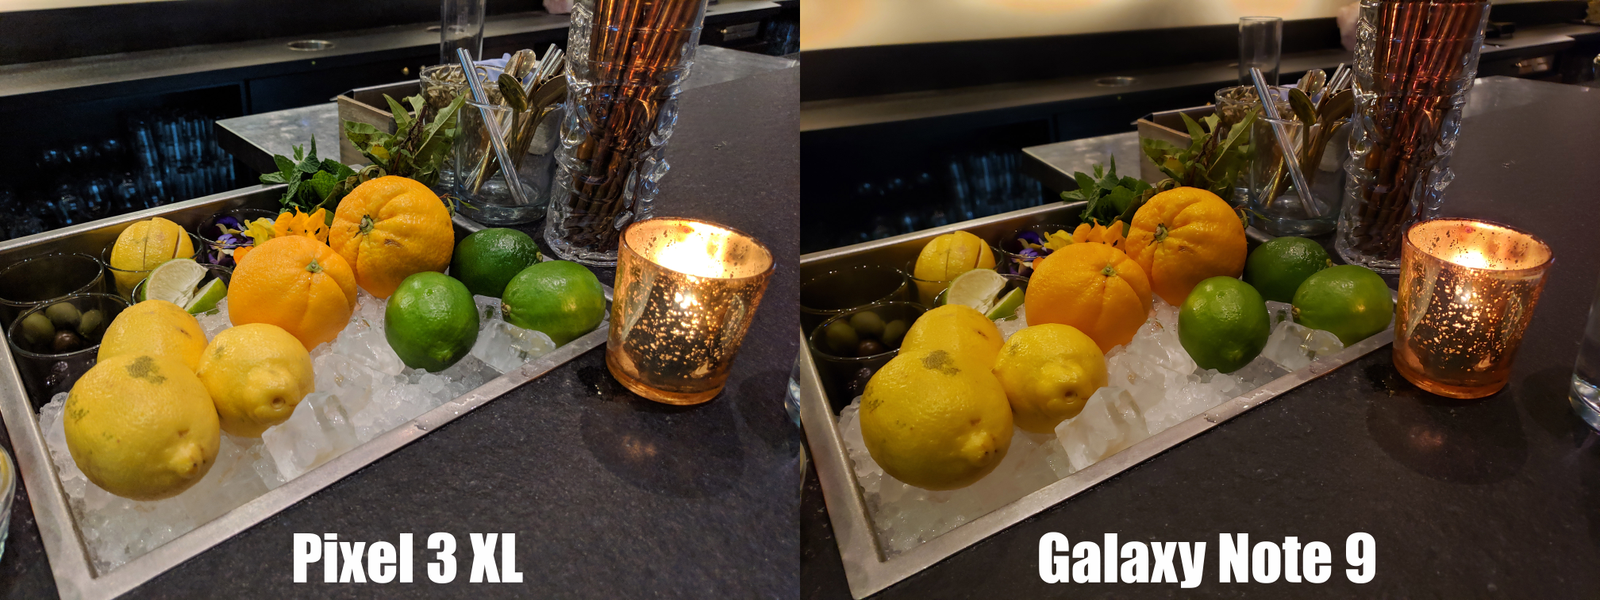 While the Note 9's pic may have been a slightly more accurate, the Pixel 3's advantage in color, exposure, and detail is obvious.